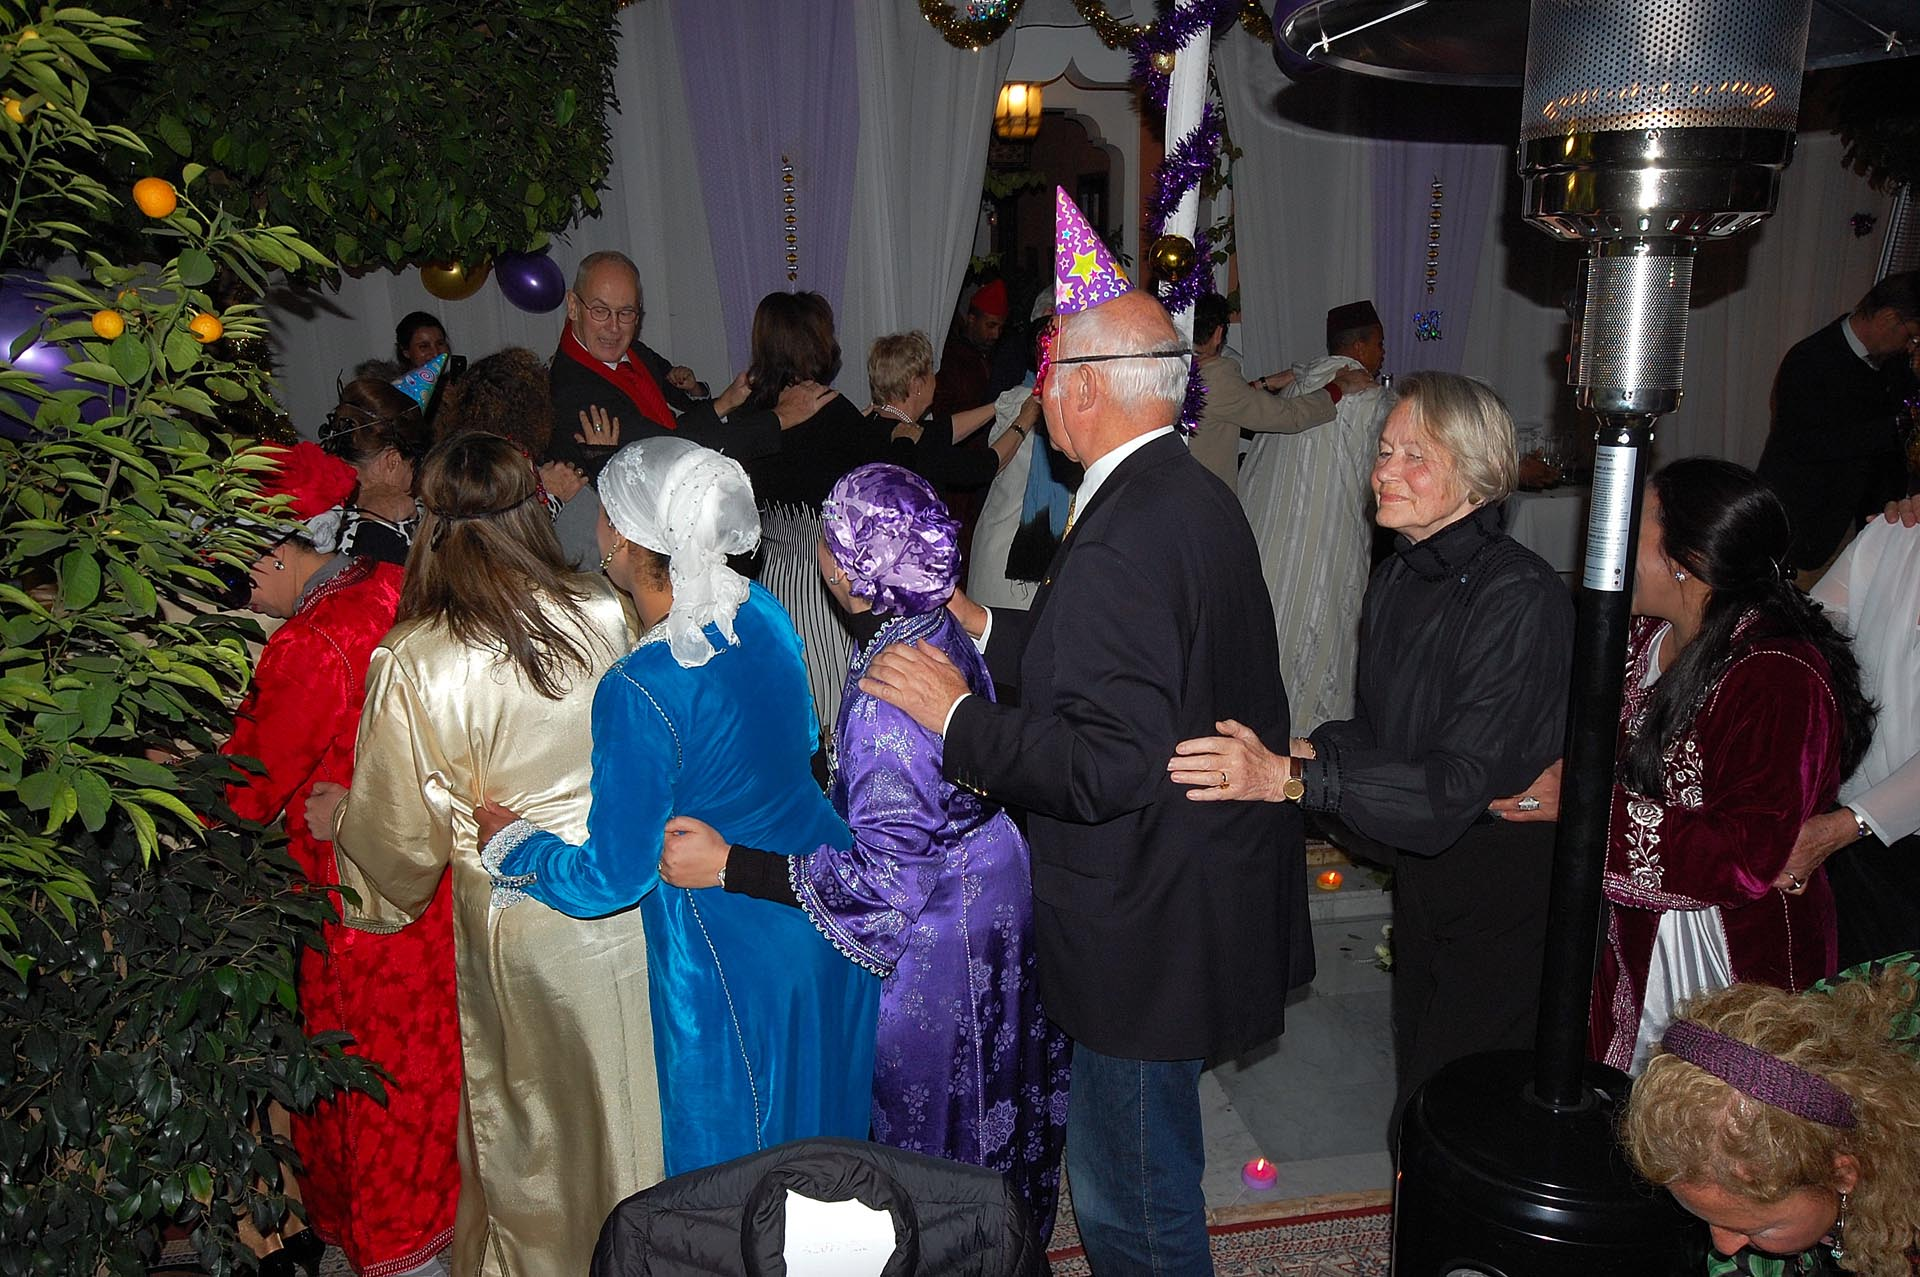 Guests and staff celebrating the New Year